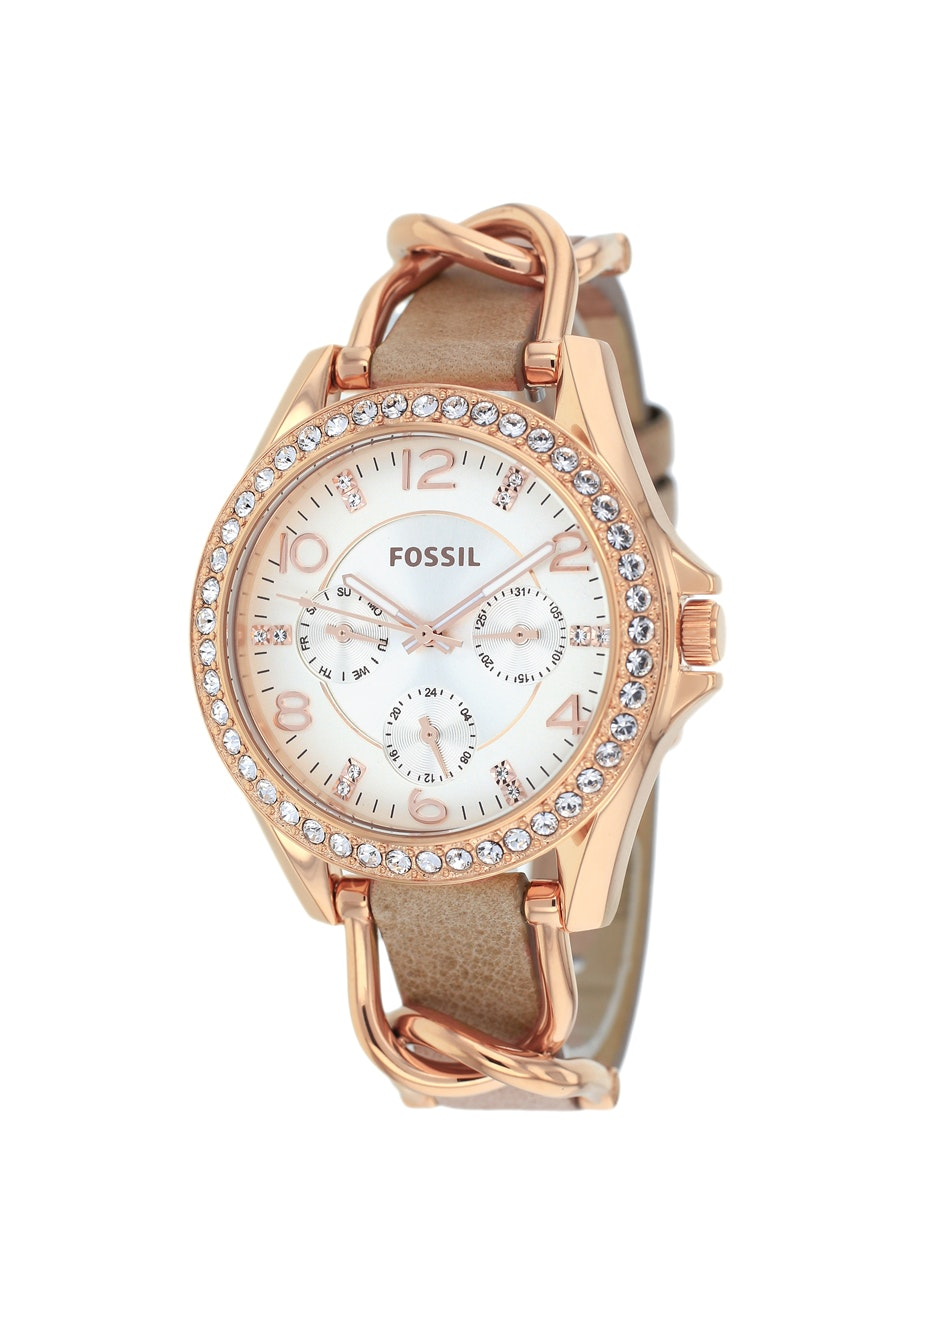 Fossil Women's Riley - Silver/Brown